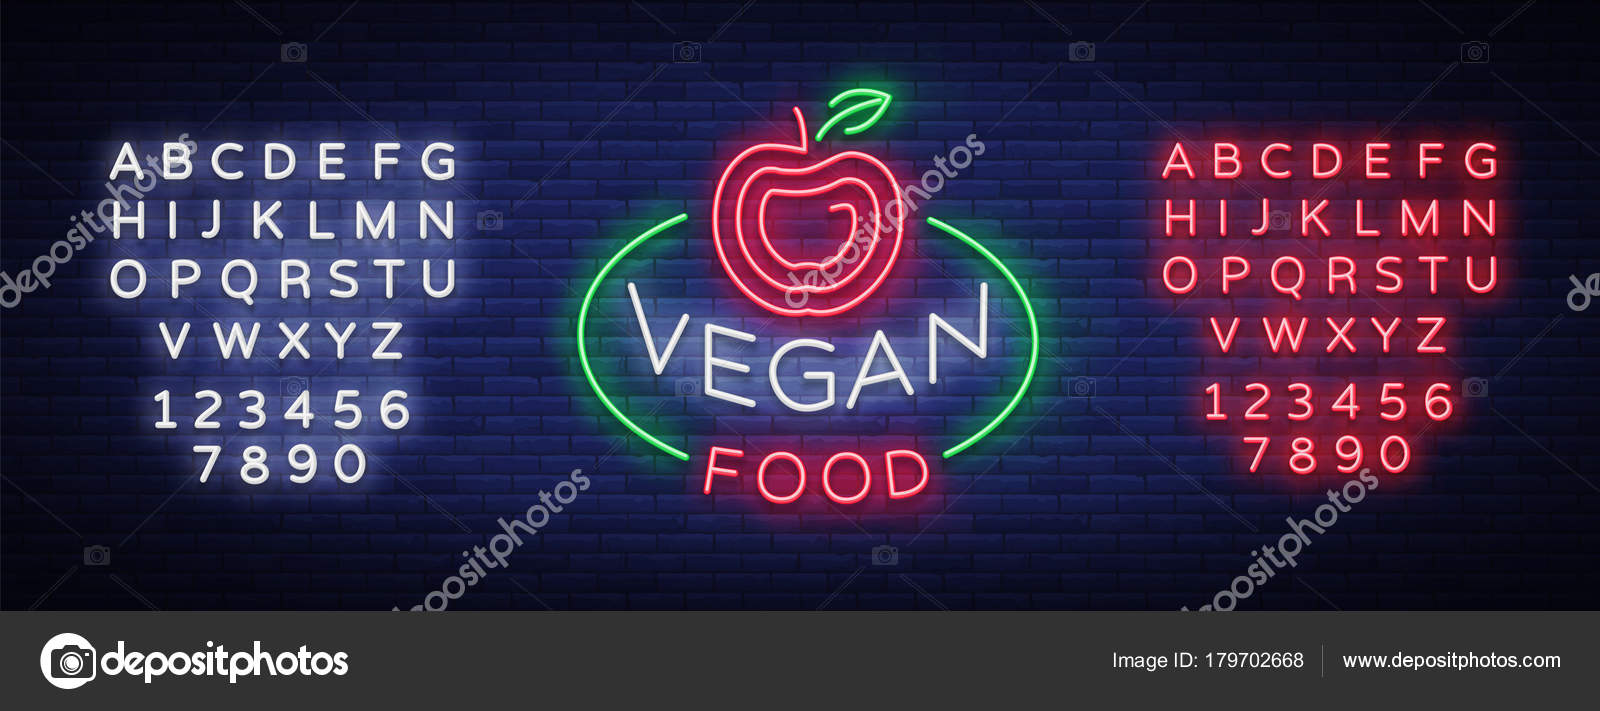 Vegan Logo Neon Sign Vegan Symbol Bright Luminous Sign Neon Night